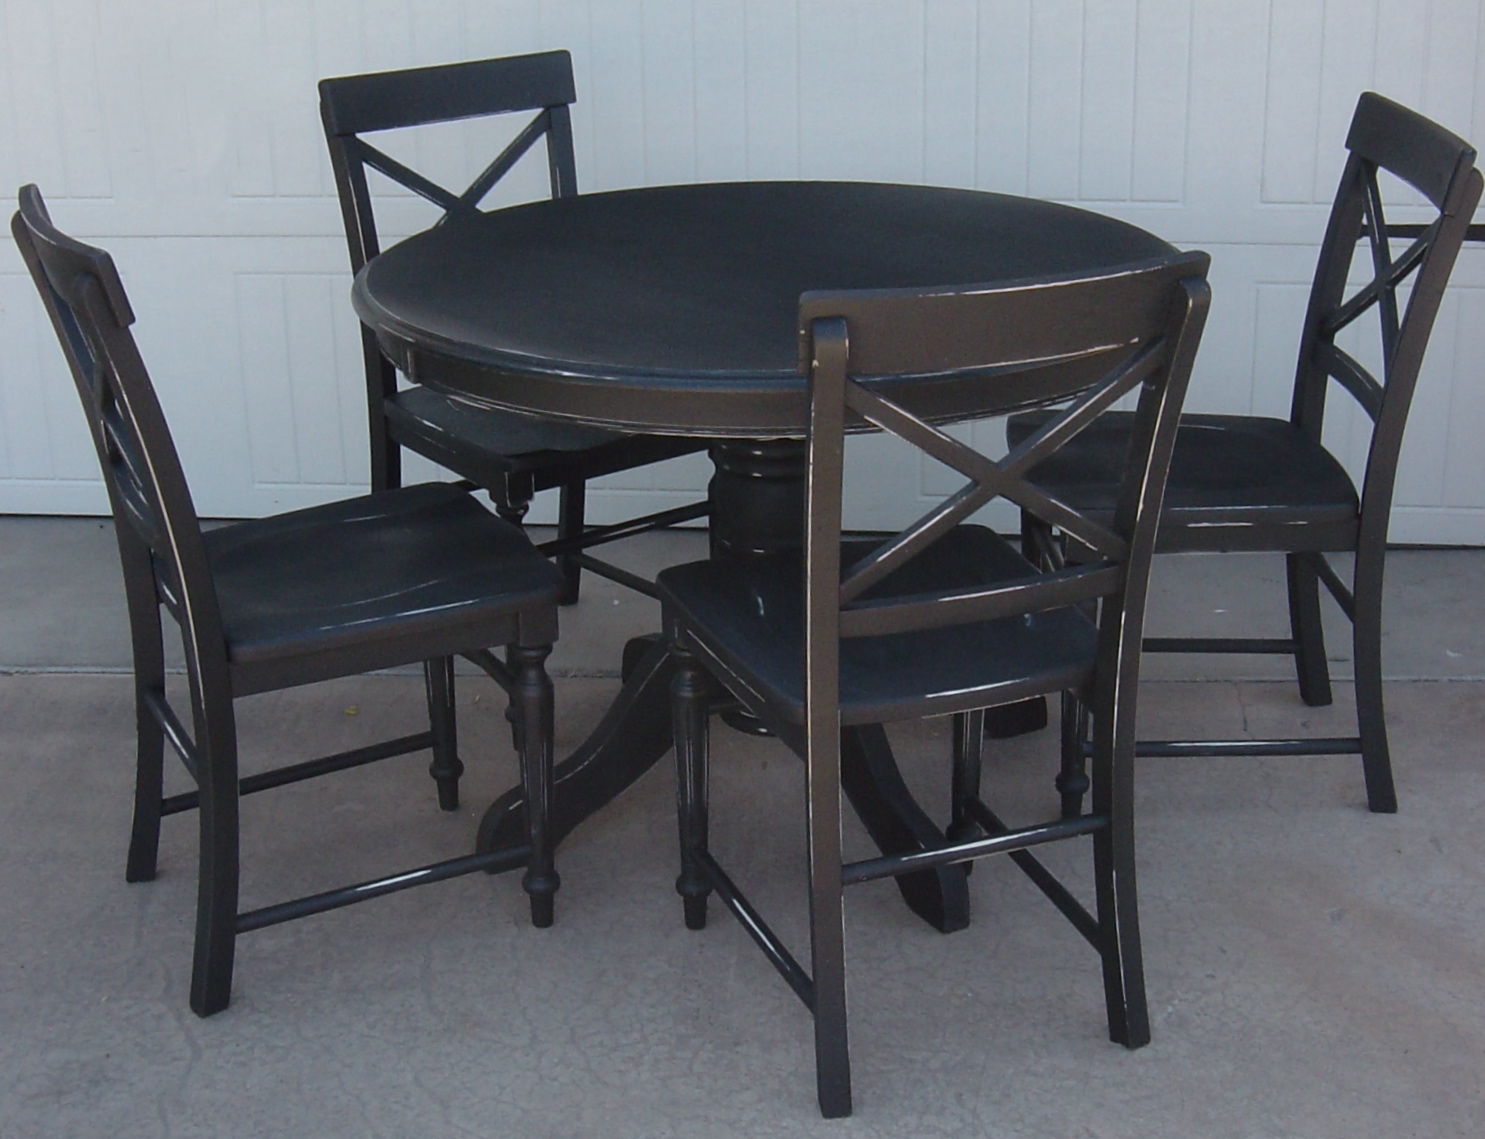 8 Chair Kitchen Table Outdoor Sets The Backyard Boutique By Five To Nine Furnishings Pier